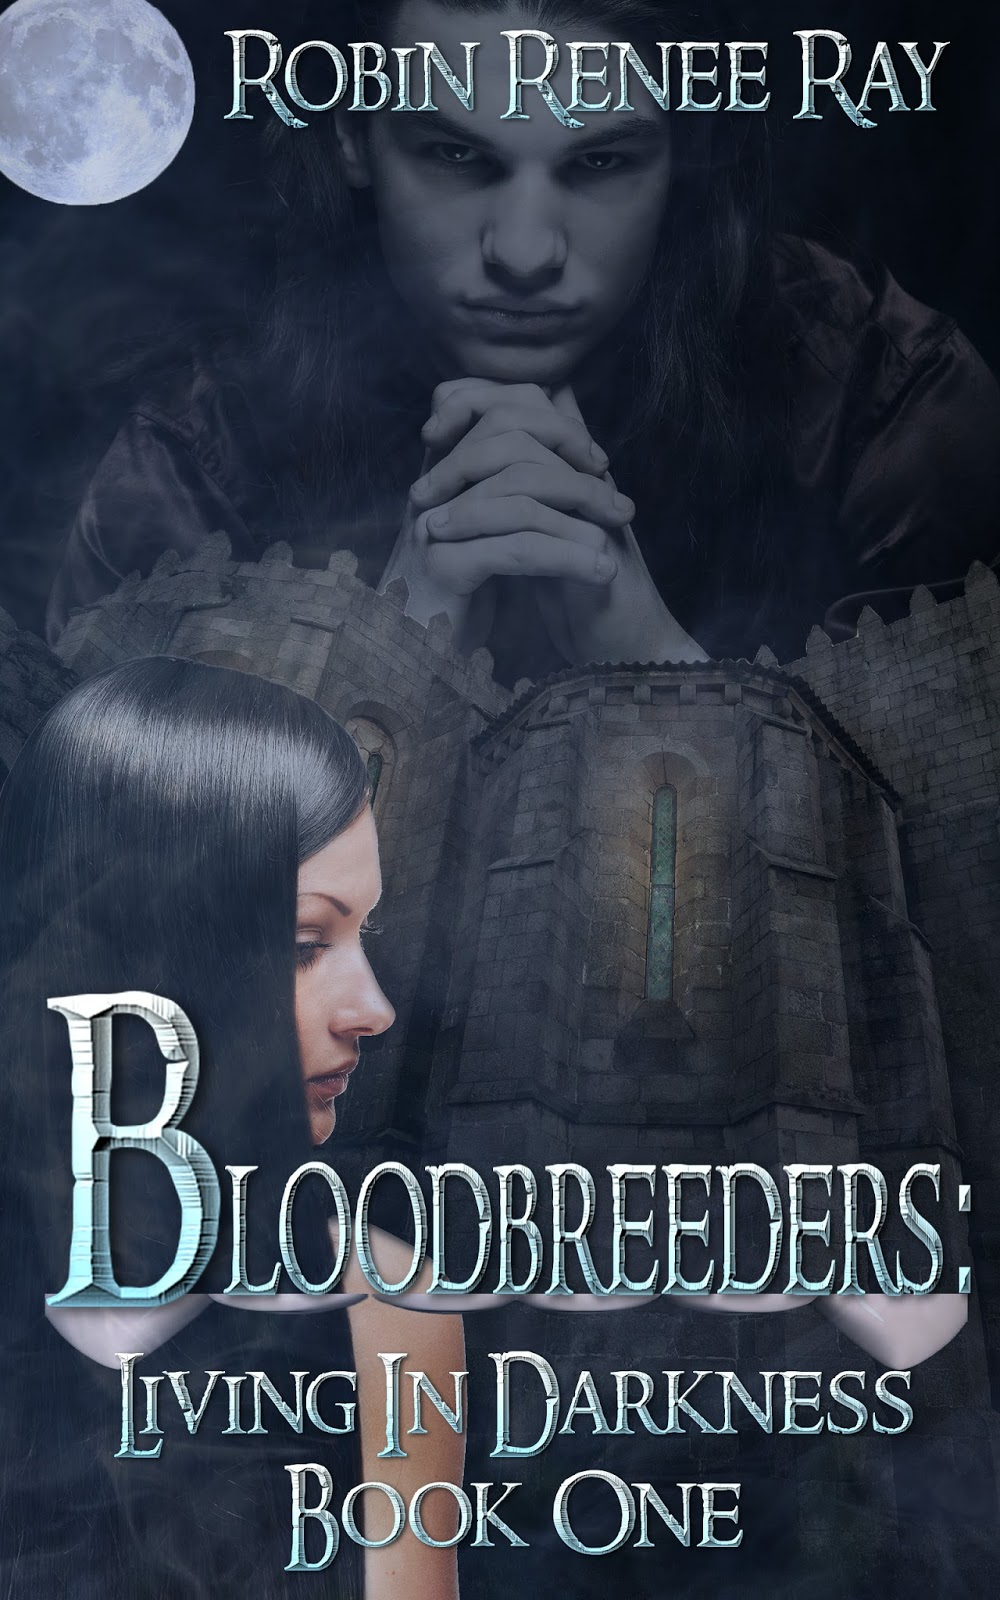 http://www.amazon.com/s/ref=nb_sb_ss_i_0_11?url=search-alias%3Ddigital-text&field-keywords=bloodbreeders&sprefix=bloodbreede%2Cdigital-text%2C524&rh=i%3Adigital-text%2Ck%3Abloodbreeders